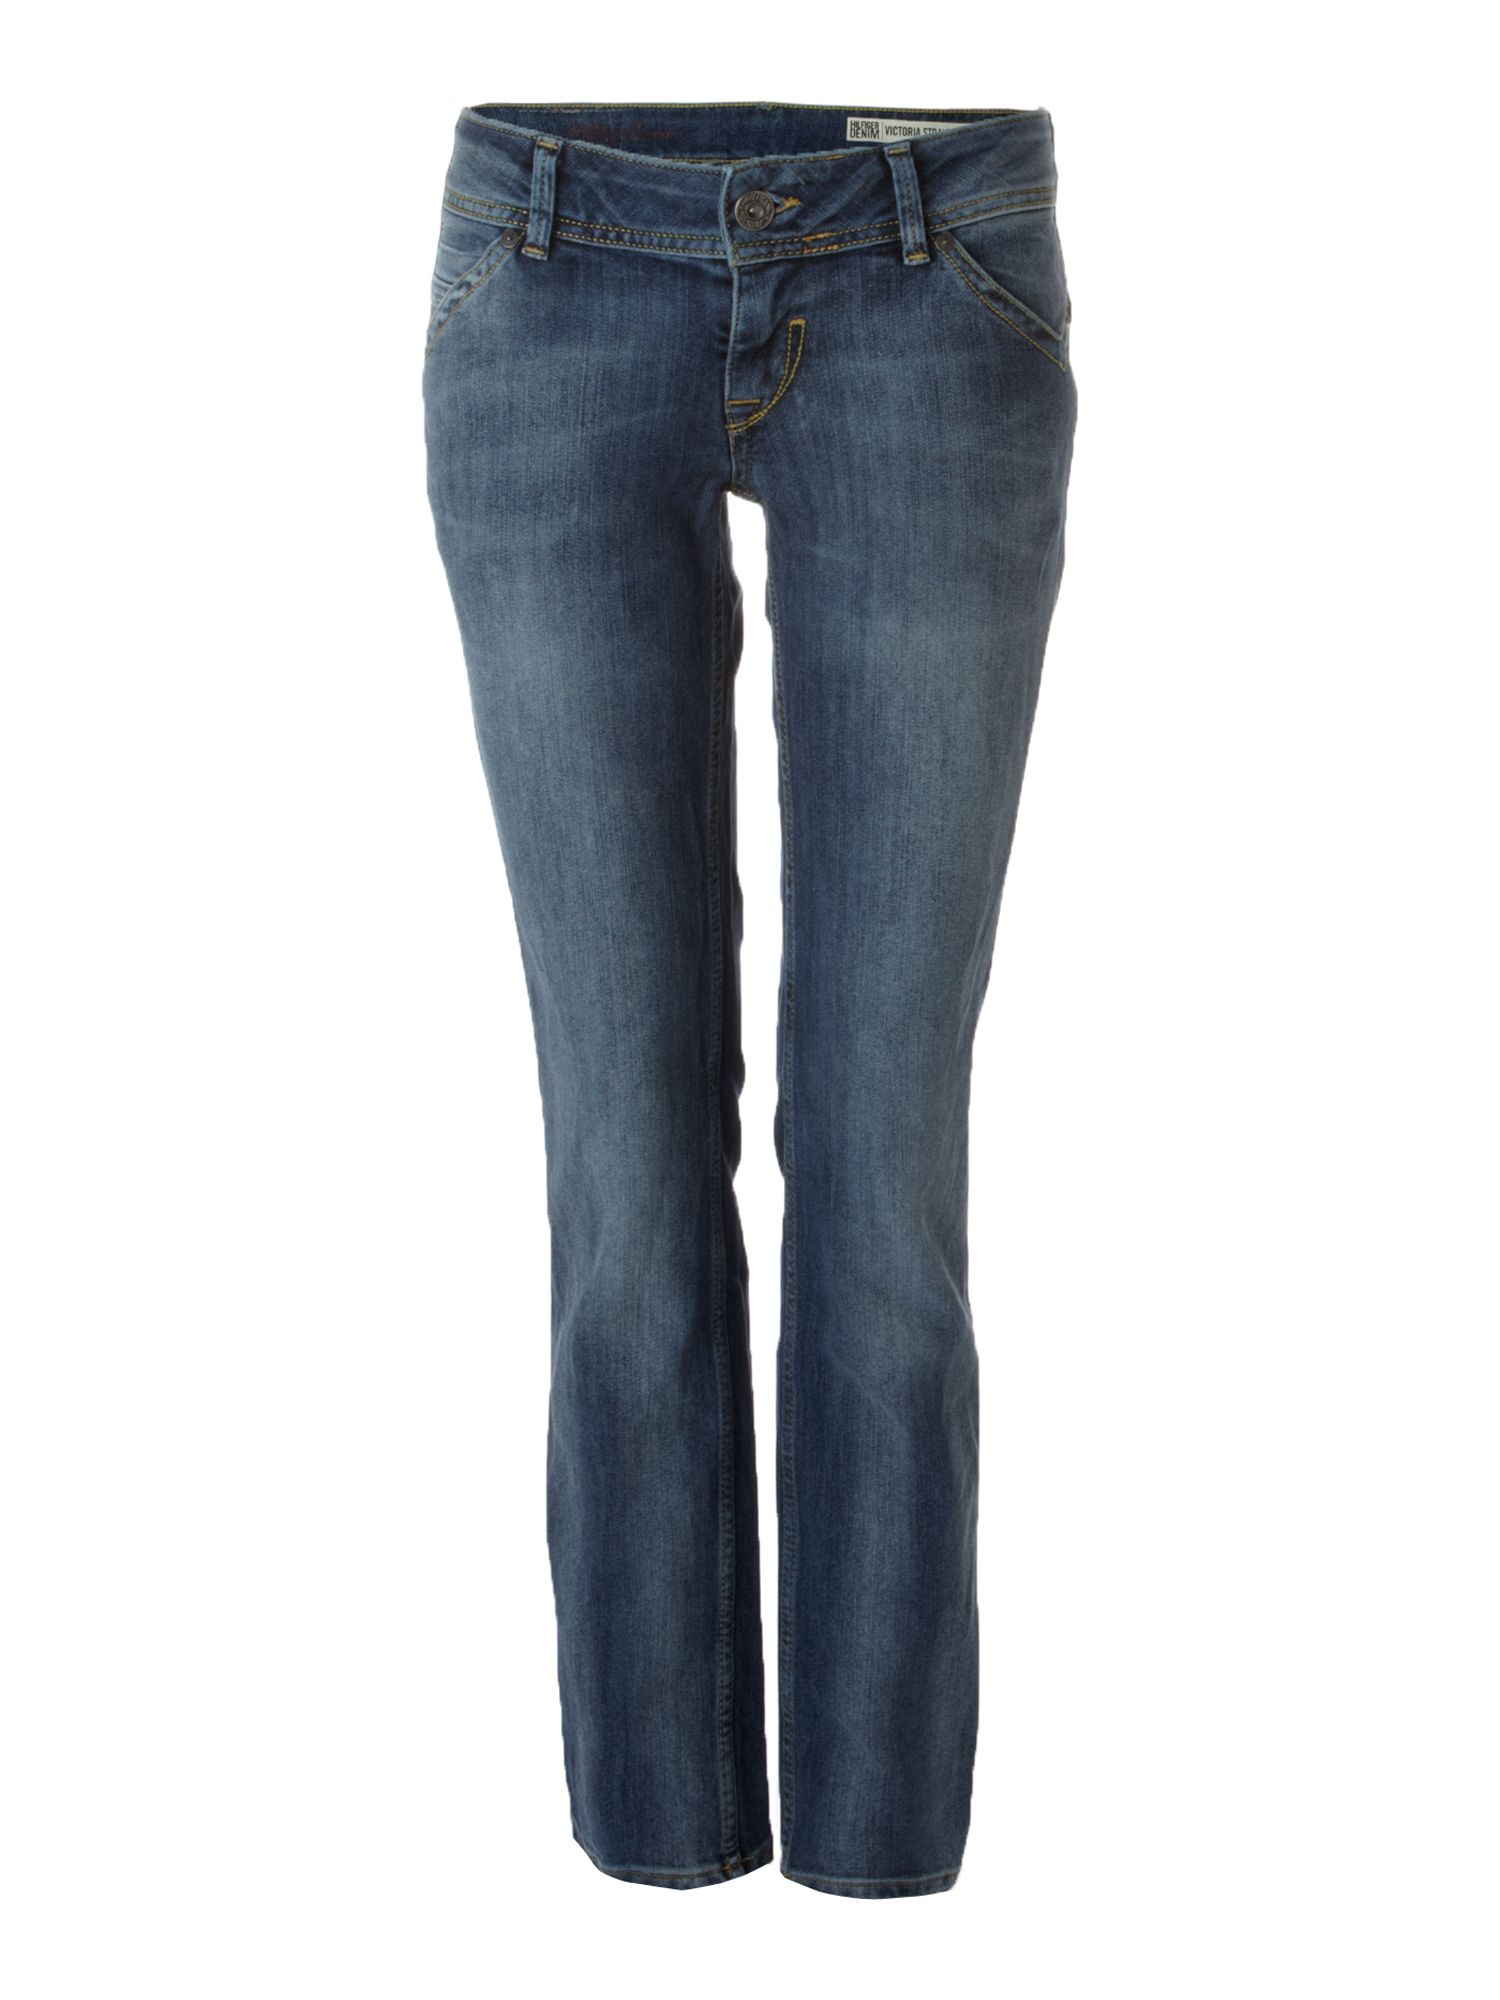 tommy hilfiger rome absolute blue jeans in blue navy lyst. Black Bedroom Furniture Sets. Home Design Ideas